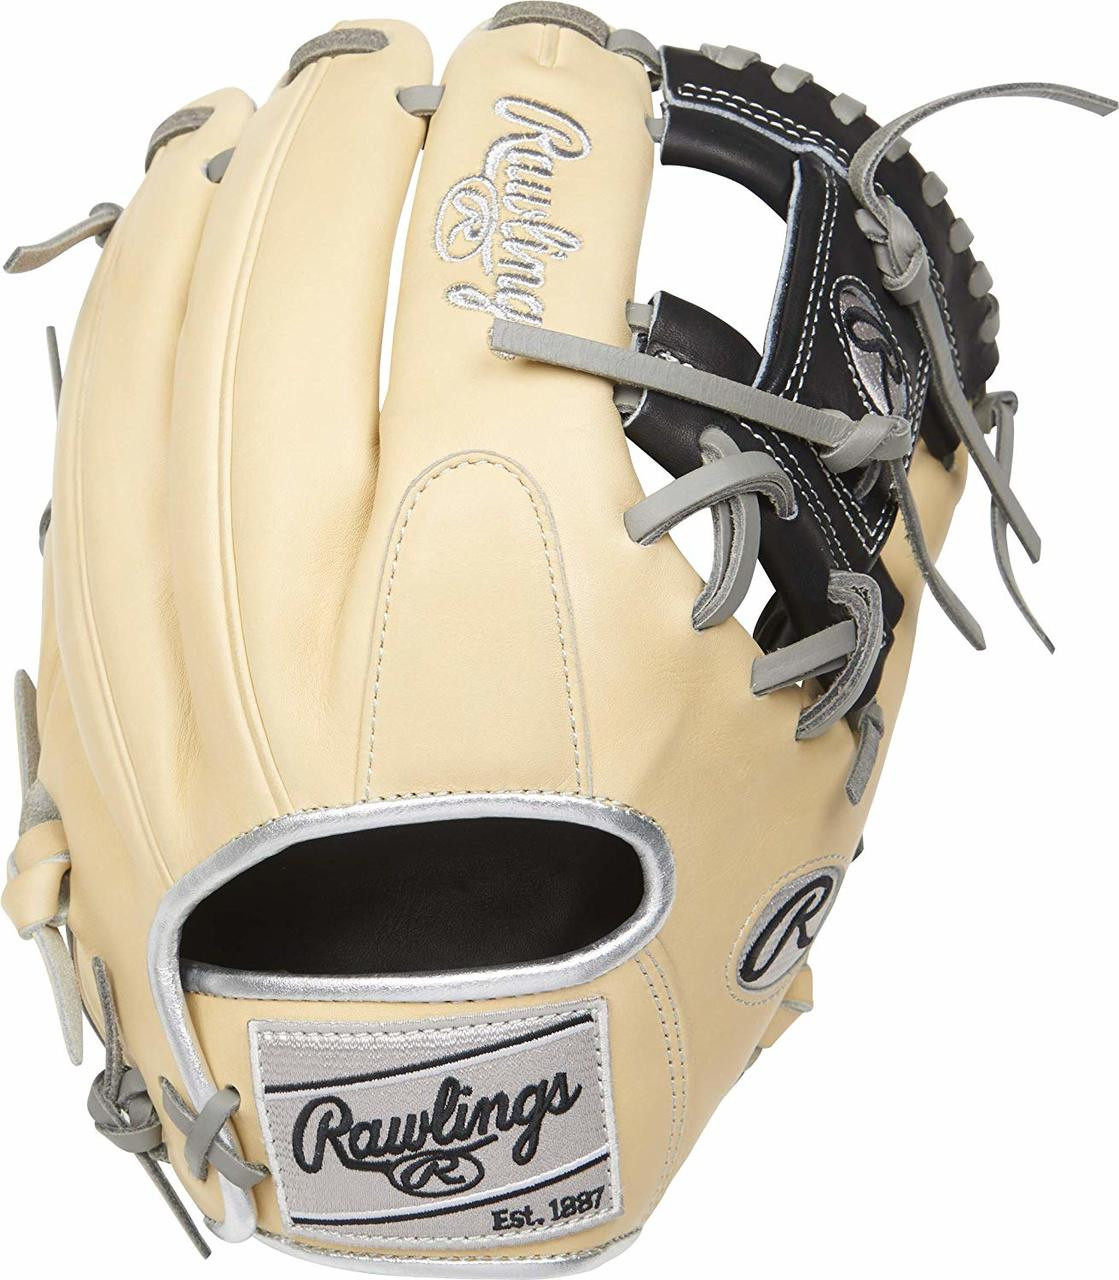 36ac168beca Rawlings Heart of The Hide R2G Francisco Lindor Model Baseball Glove 11.75  inch I Web Right Hand Throw - Ballgloves